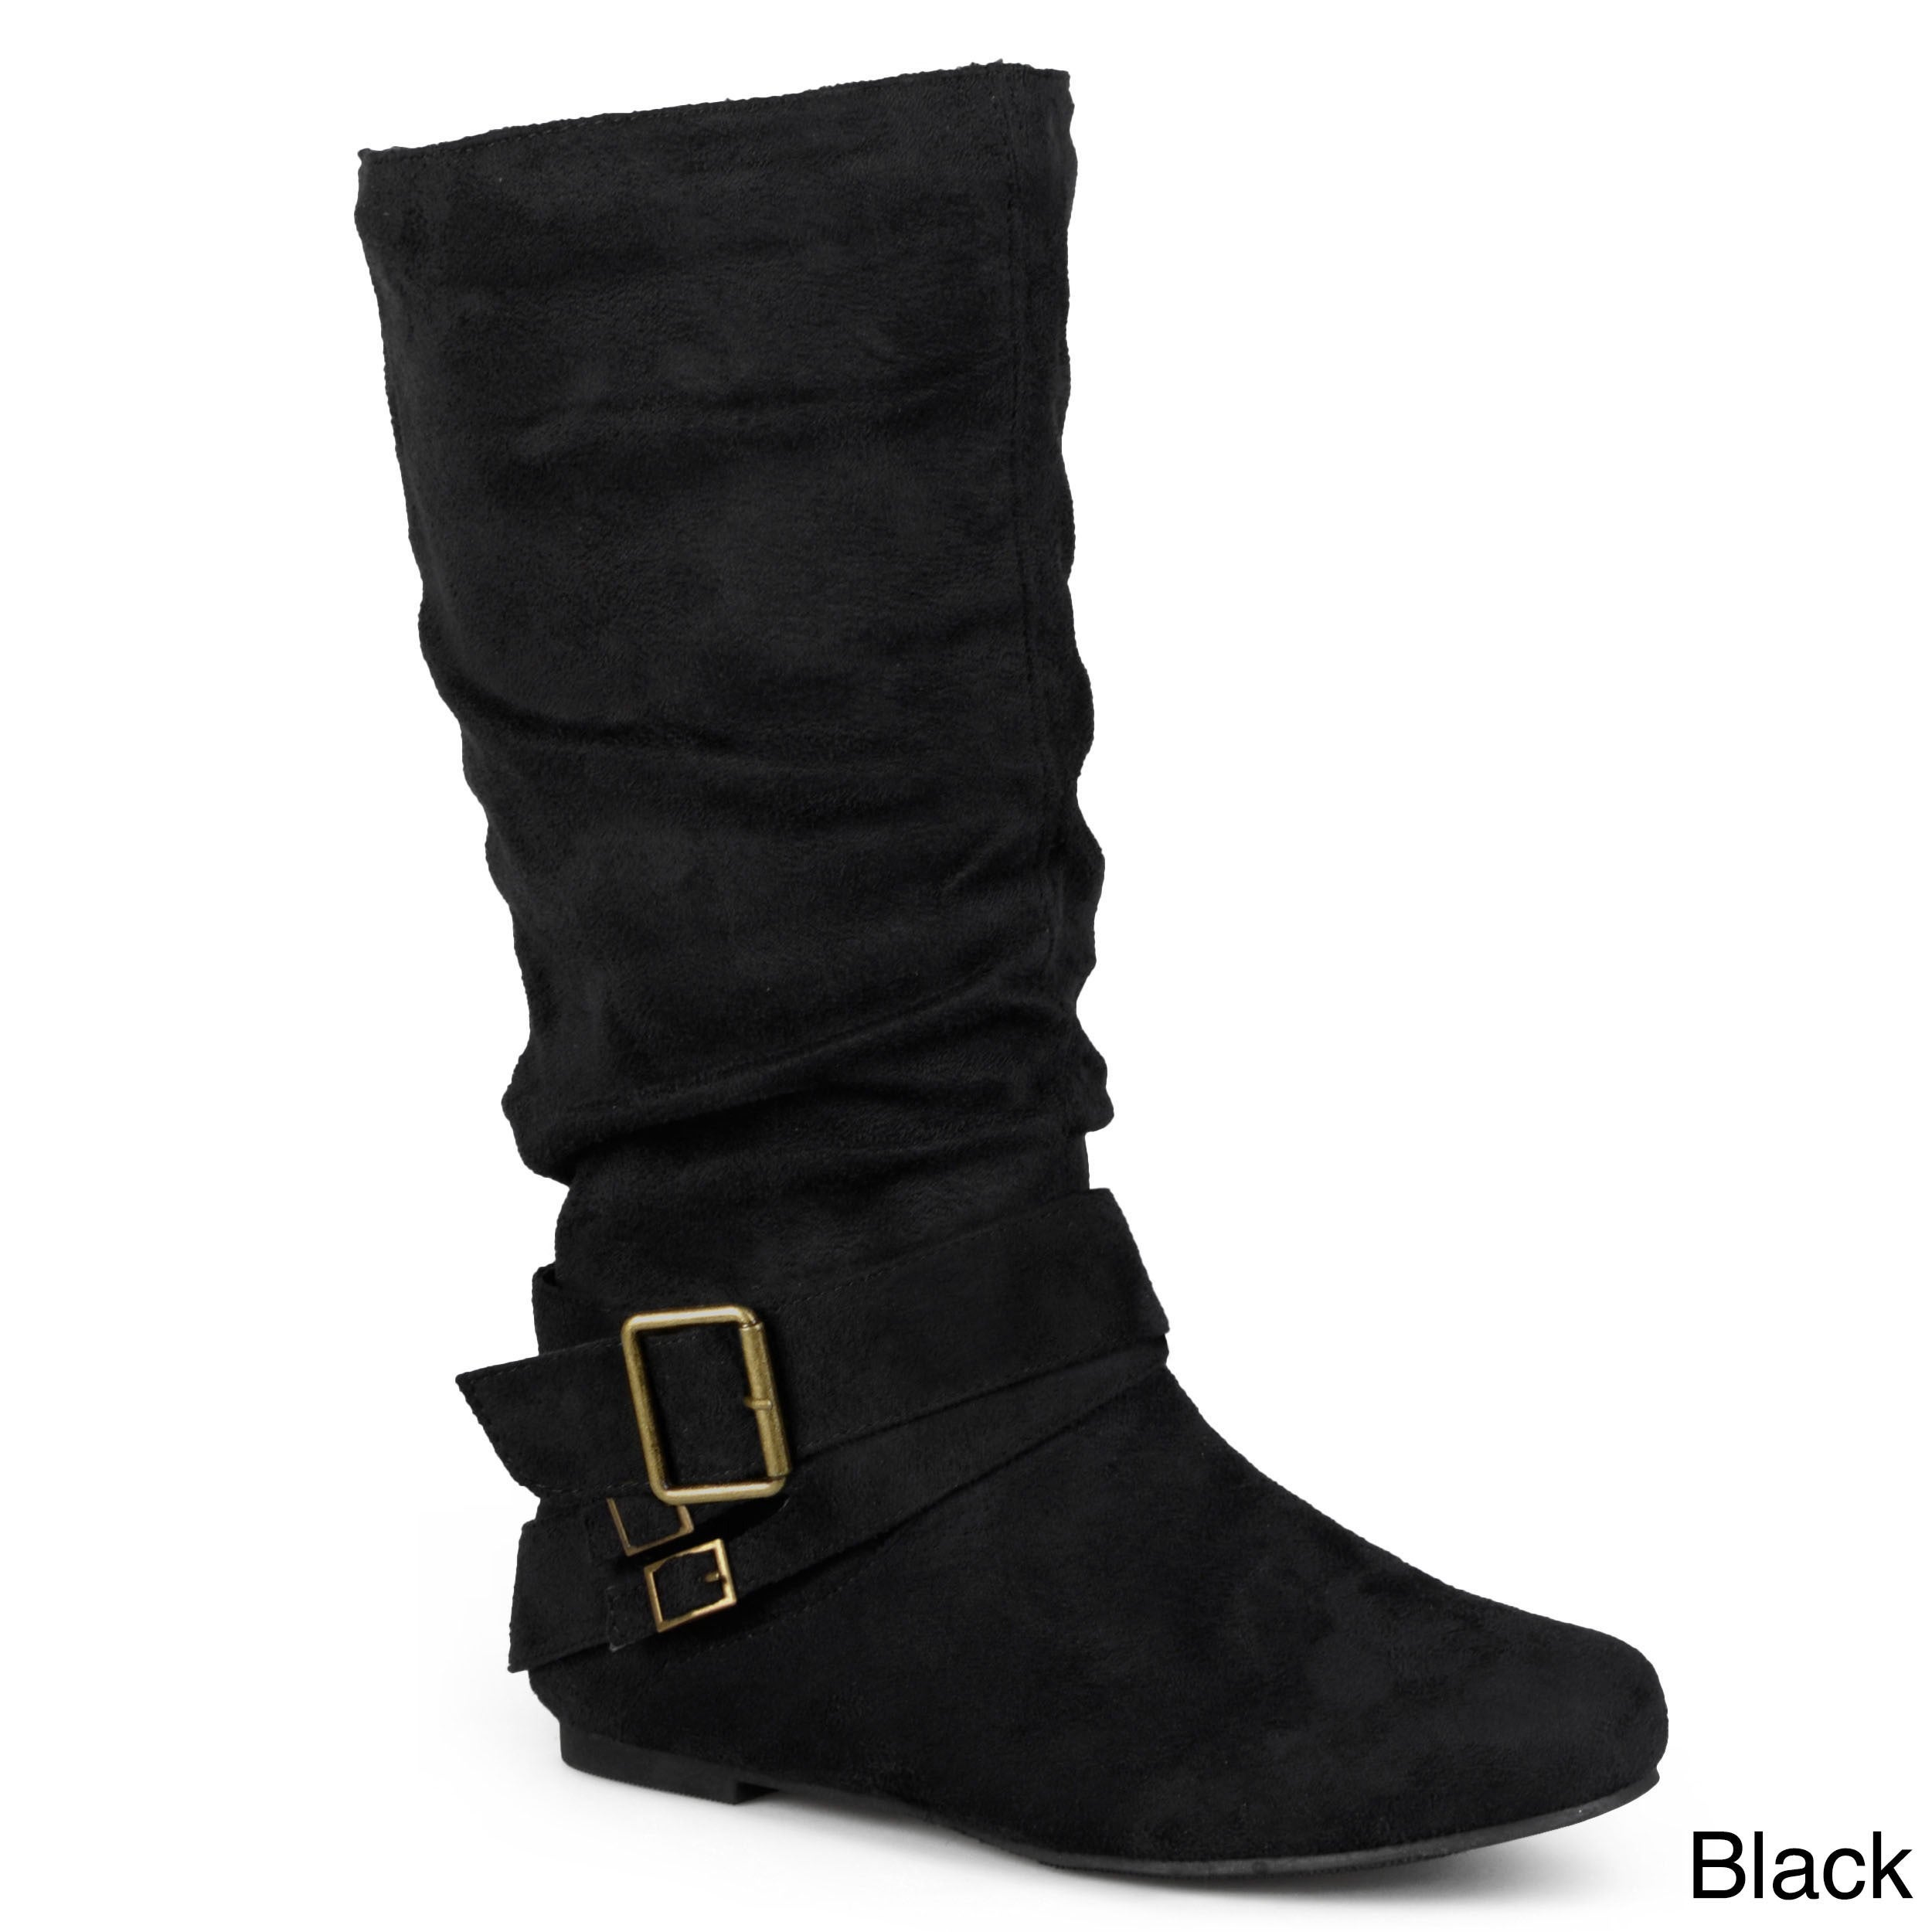 d45776f3570c Shop Journee Collection Women's 'Shelley-6' Regular and Wide-calf Buckle Slouch  Boot - Free Shipping Today - Overstock - 4239698